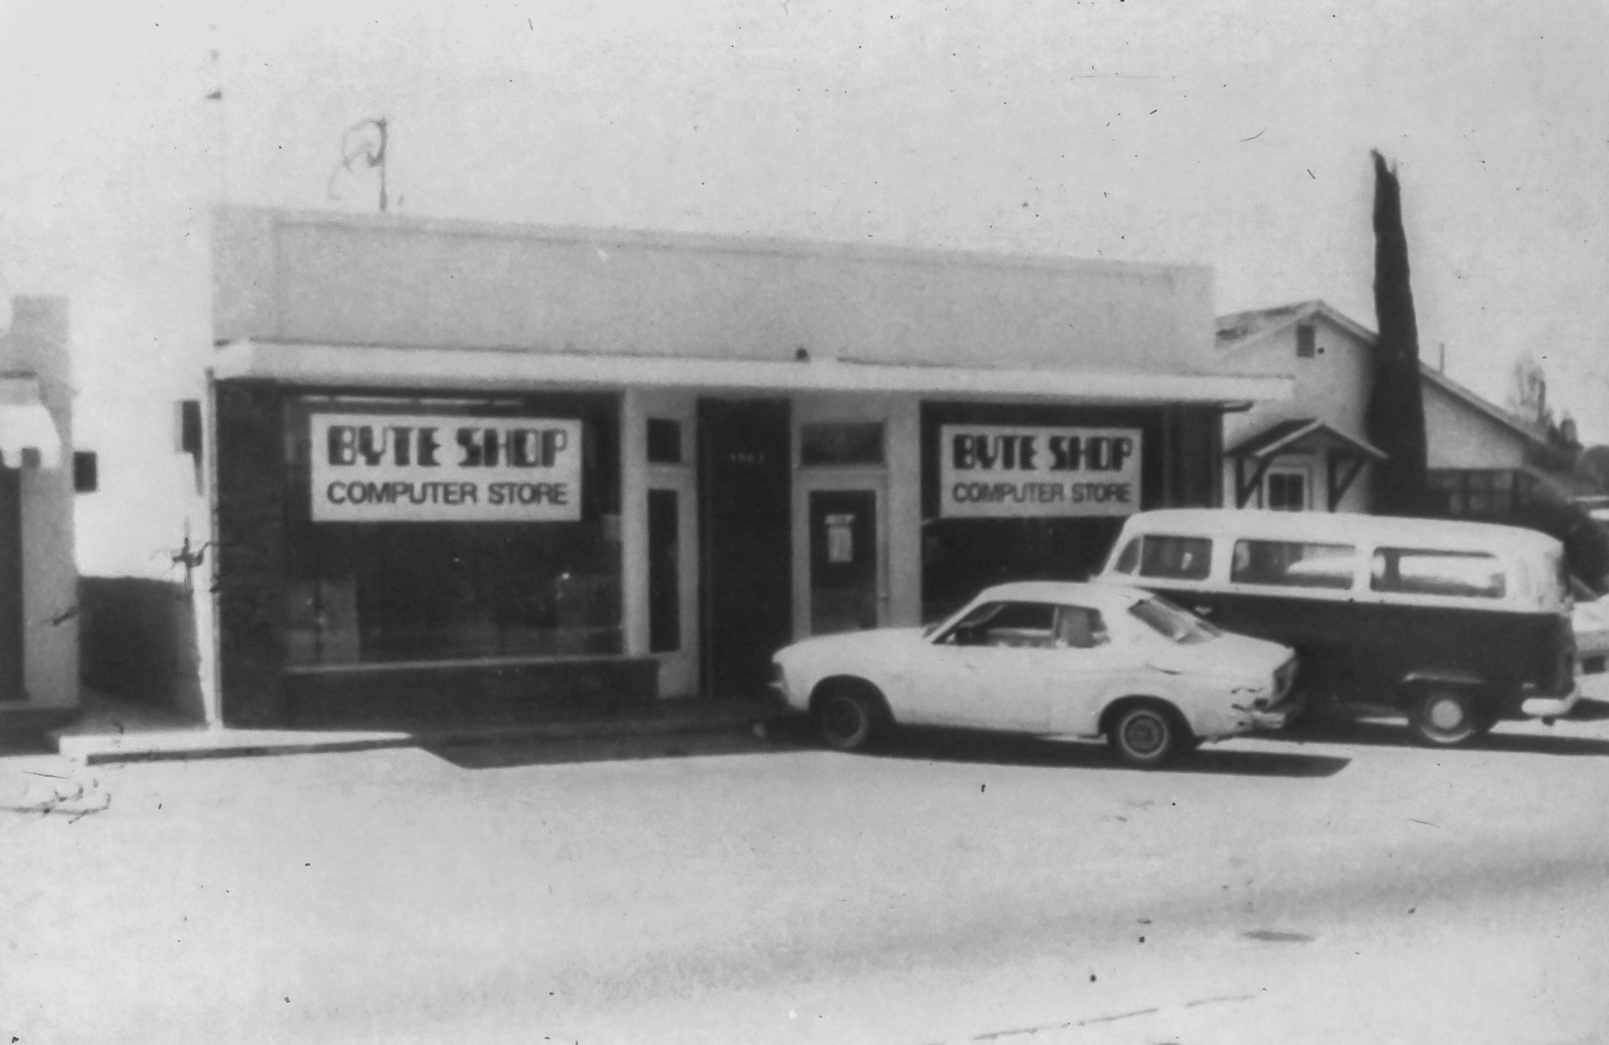 The Byte Shop circa 1976